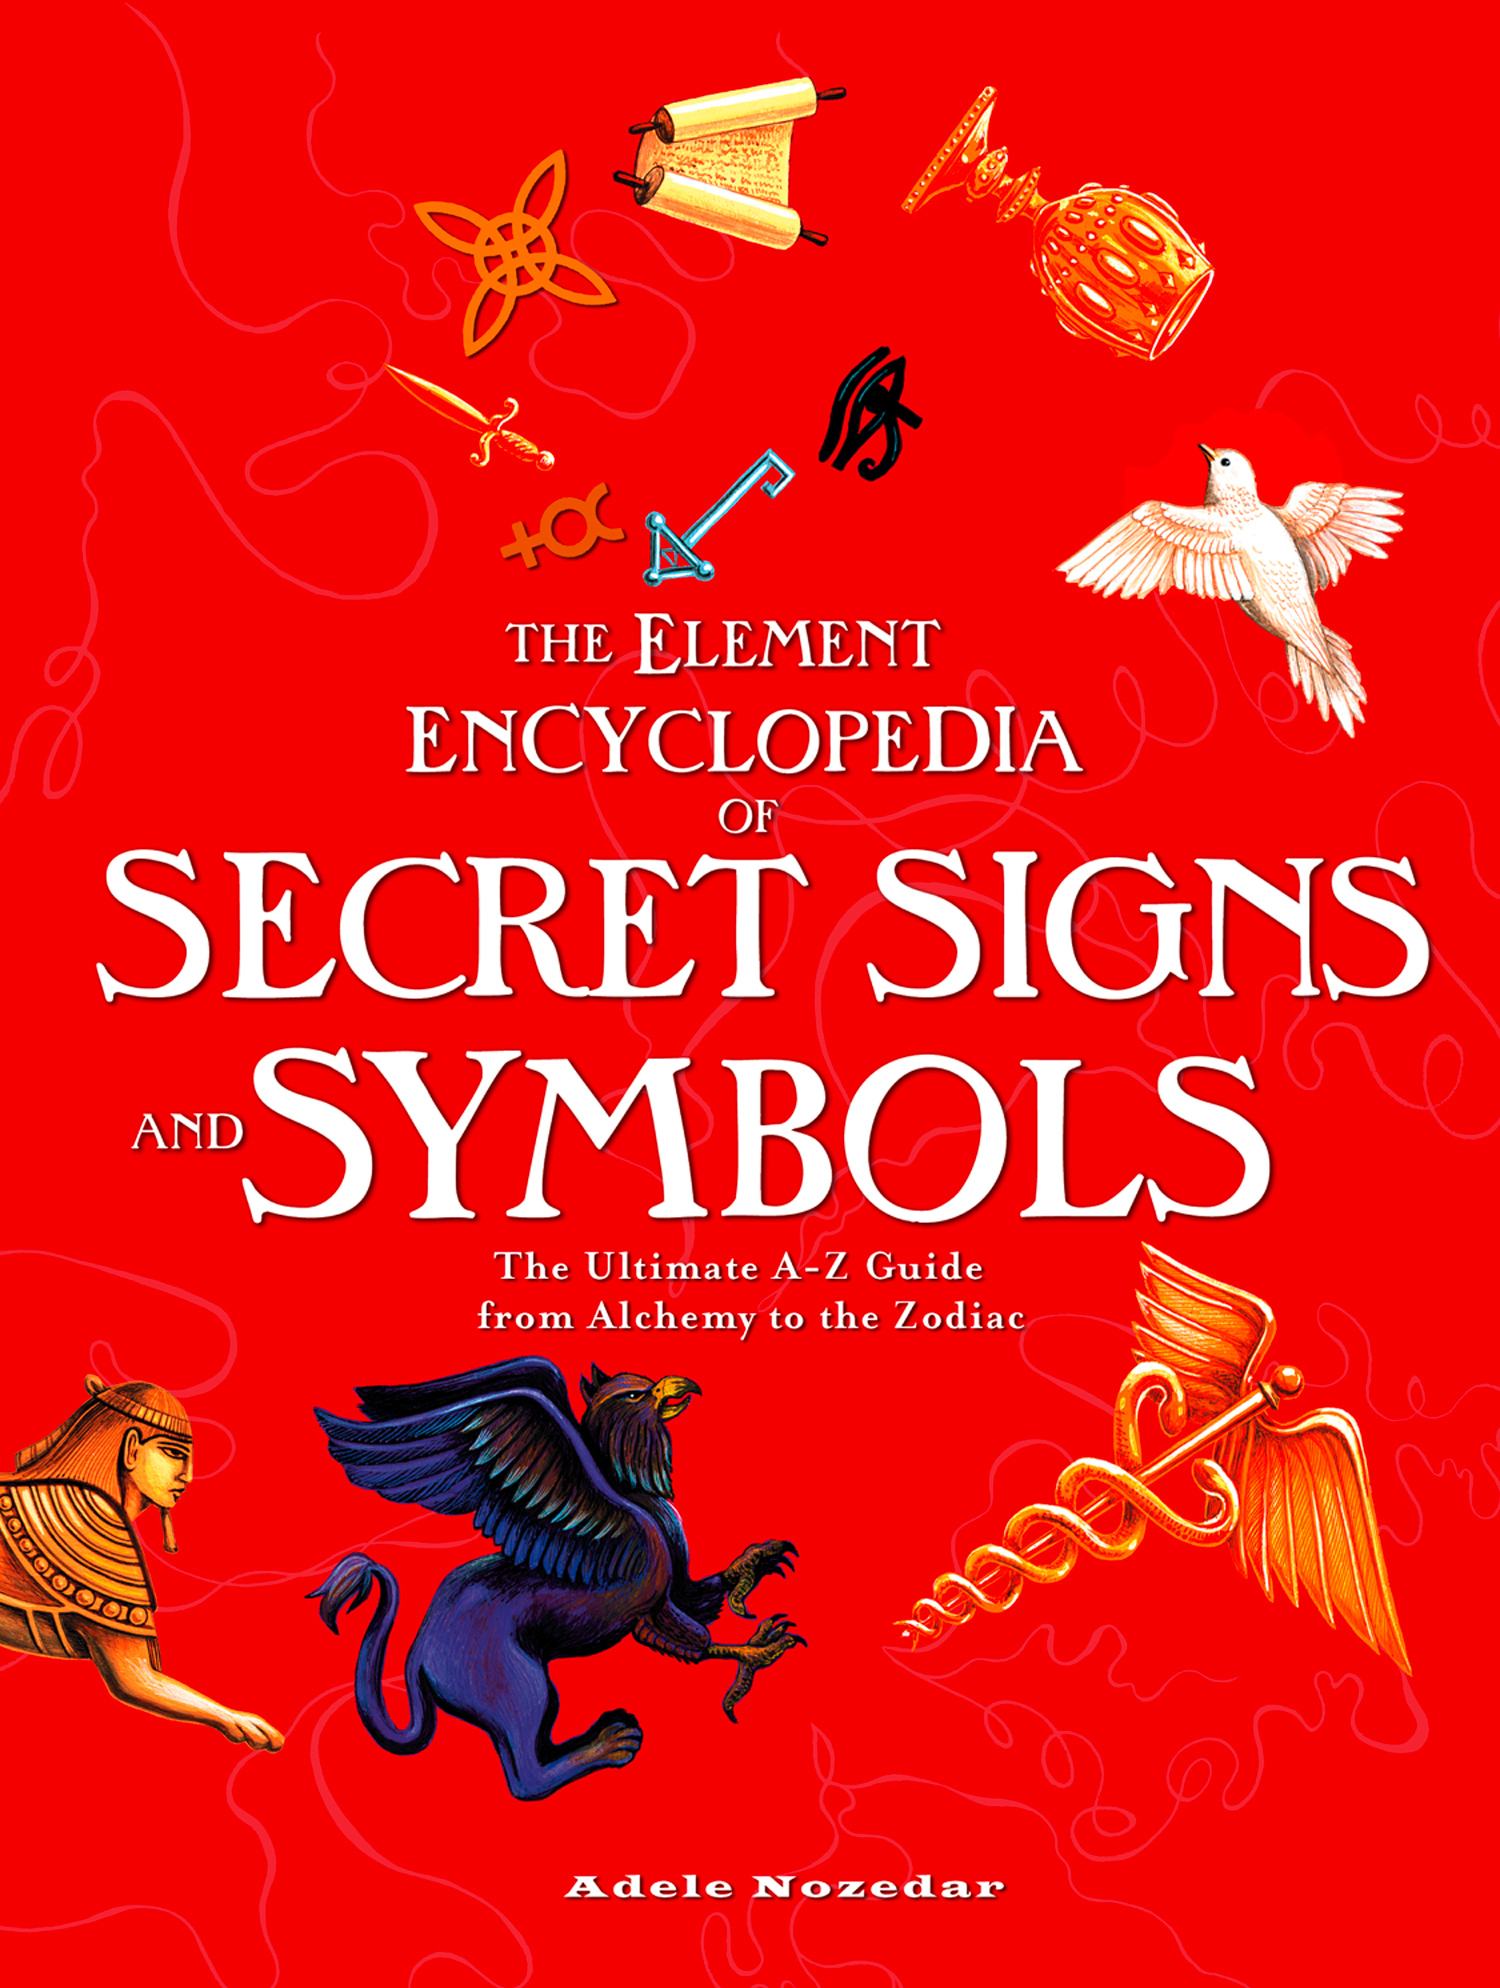 The Element Encyclopedia of Secret Signs and Symbols: The Ultimate A?Z Guide from Alchemy to the Zodiac